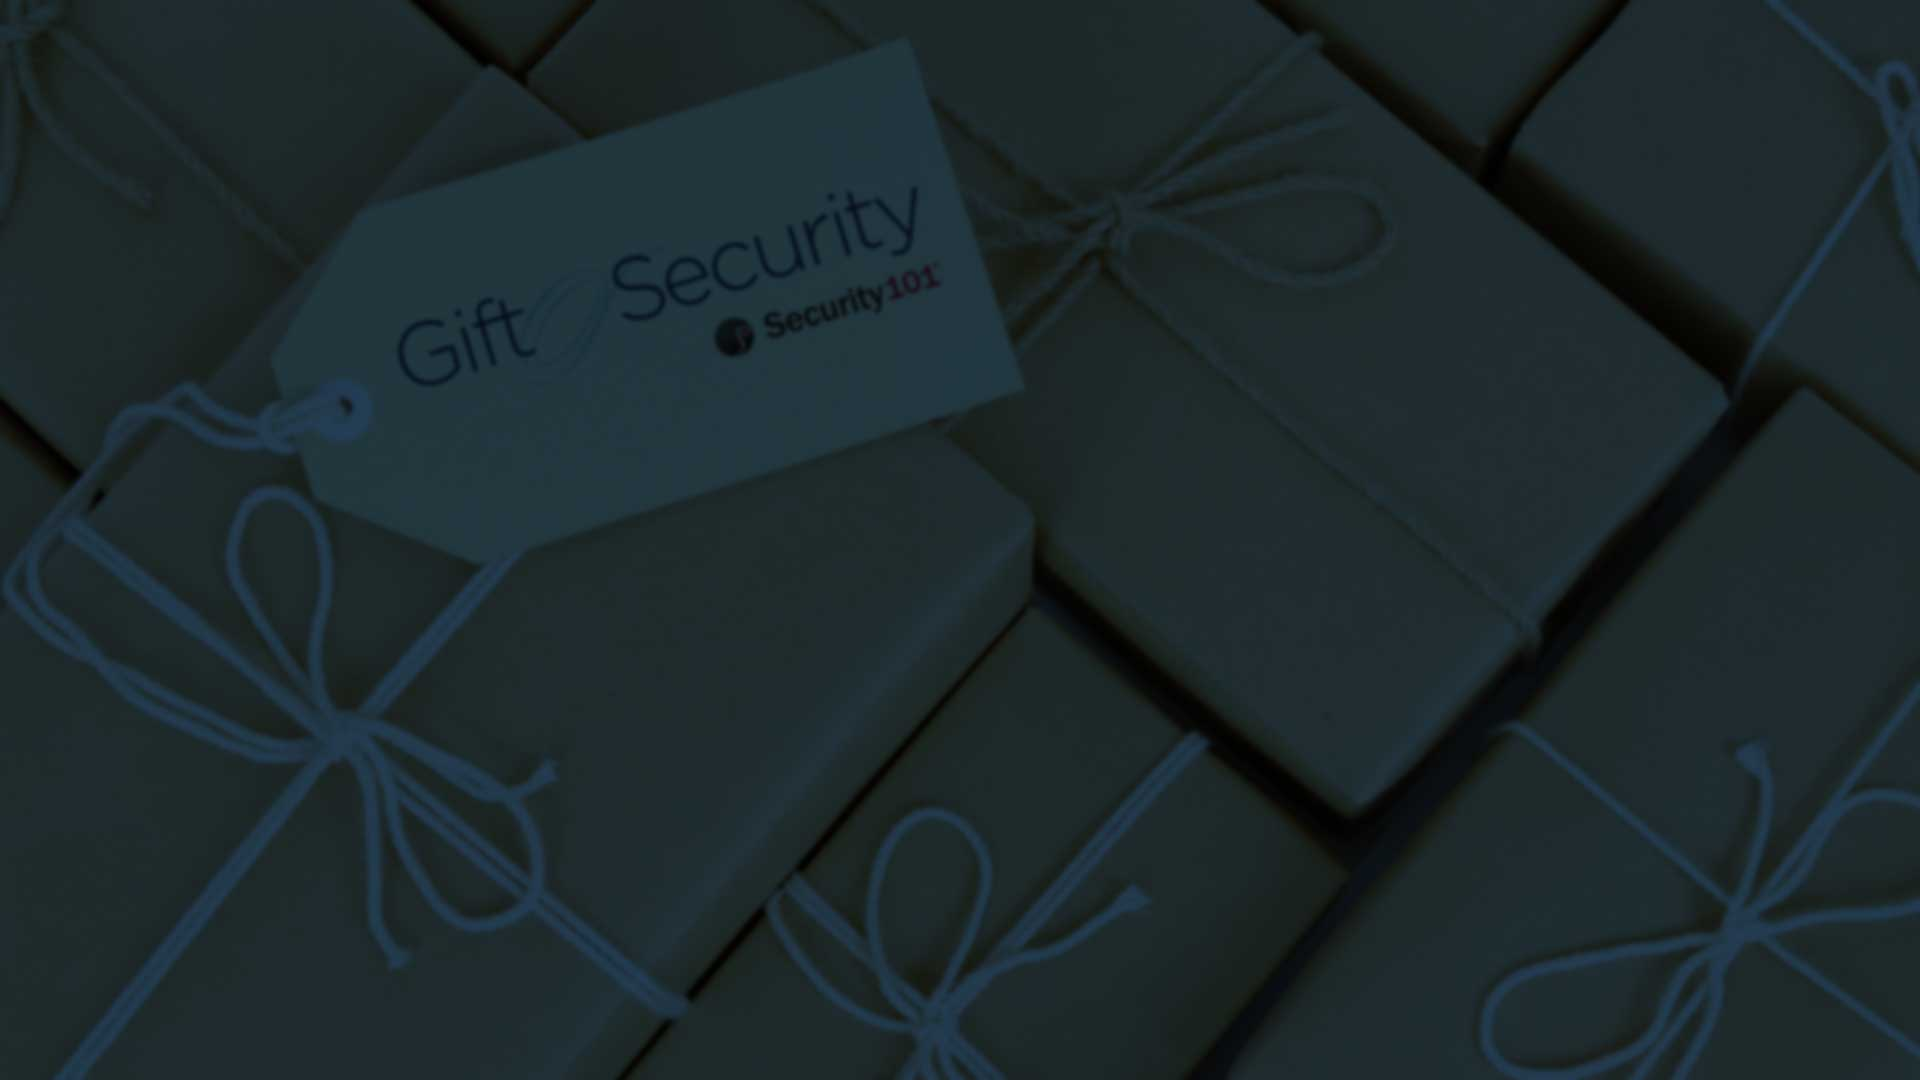 Gift of Security logo 2019